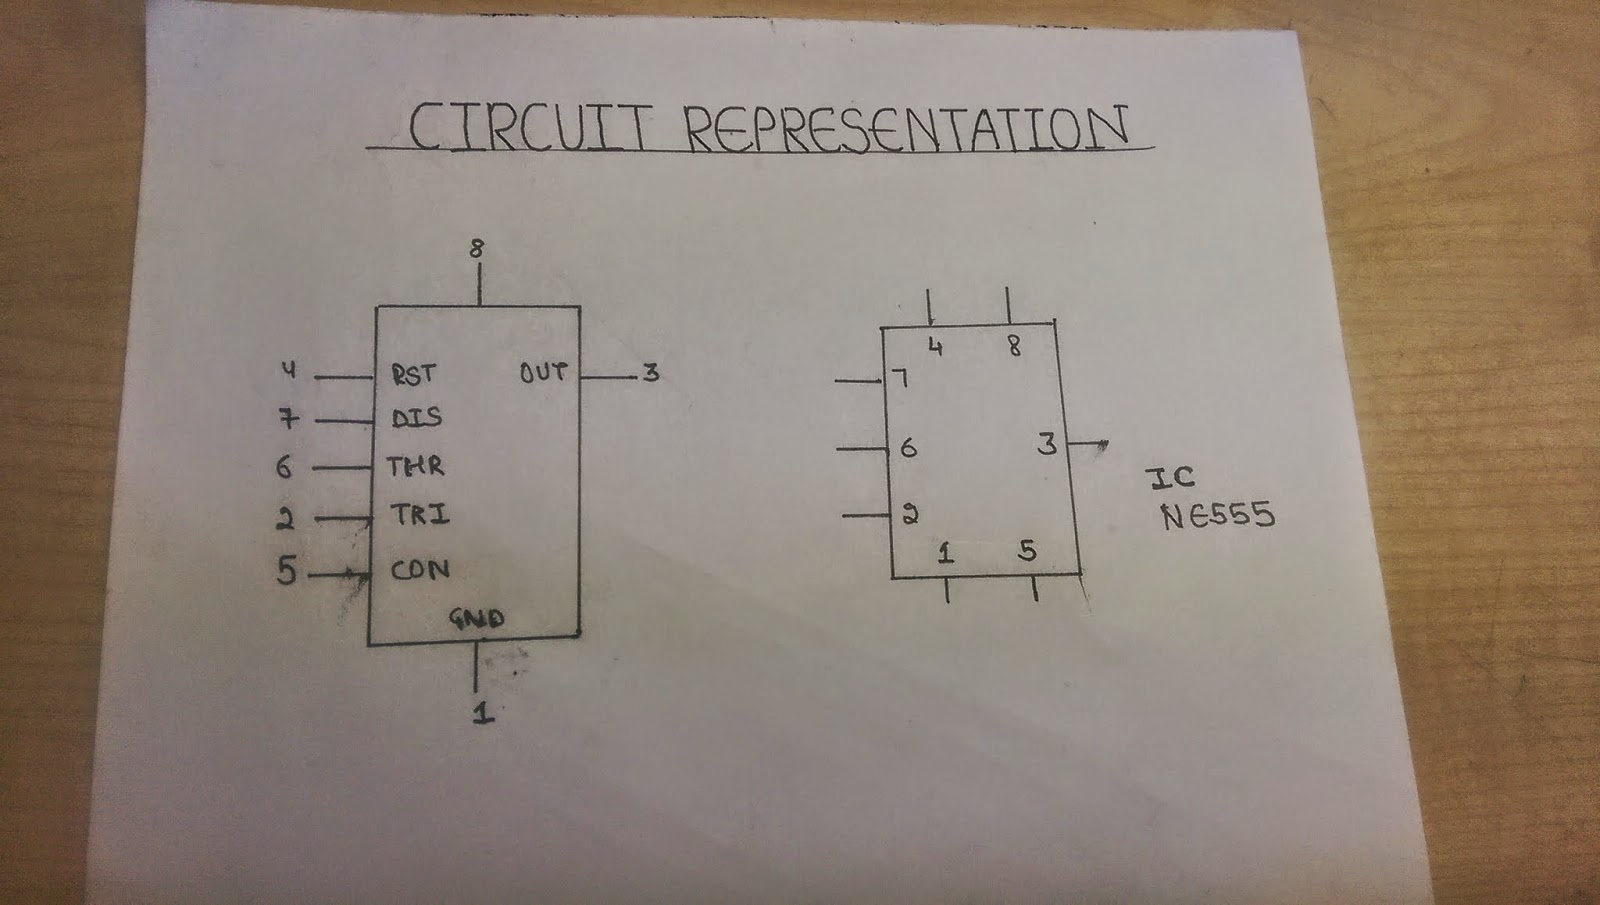 Iiitd Systems Management 2014 How Stuff Works Circuit Likewise 555 Timer Diagram On Monostable Multivibrator Configuration It Functions As To Carry Out Pulse Width Modulation Pwm Of Audio Signal Currenti Capacity Amplifier Is